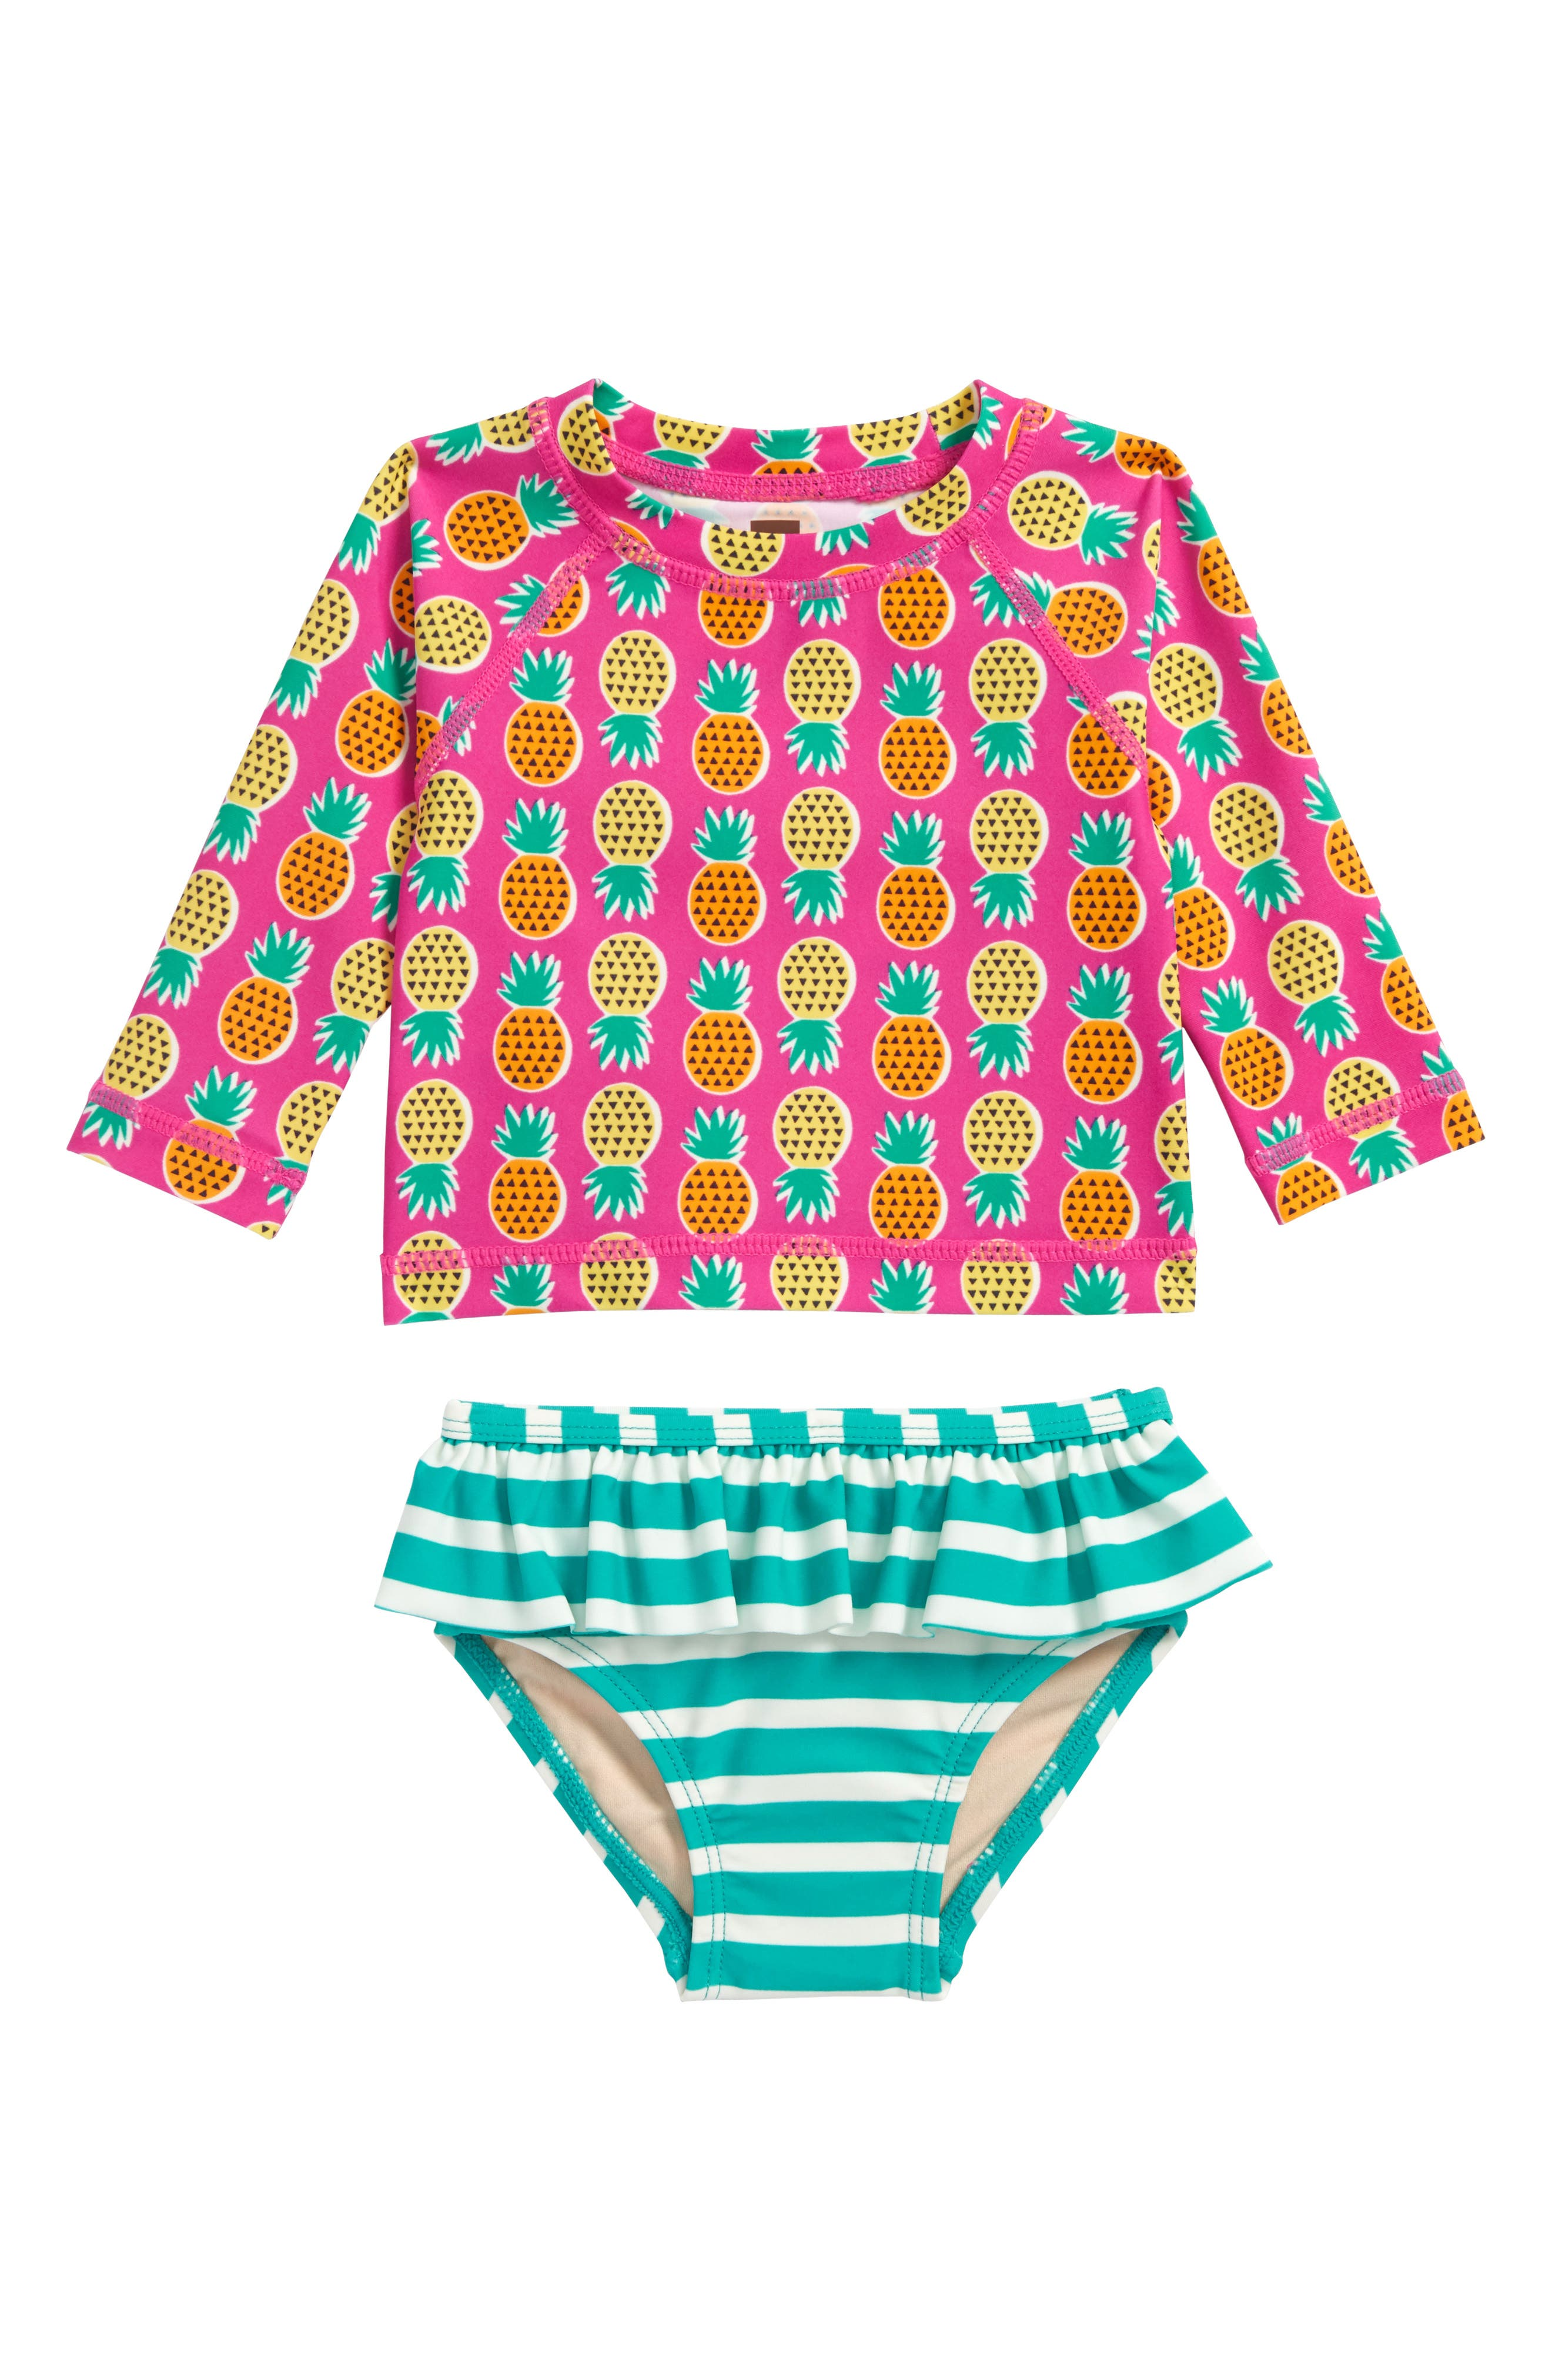 Mixed Print Two-Piece Rashguard Swimsuit,                         Main,                         color, 671